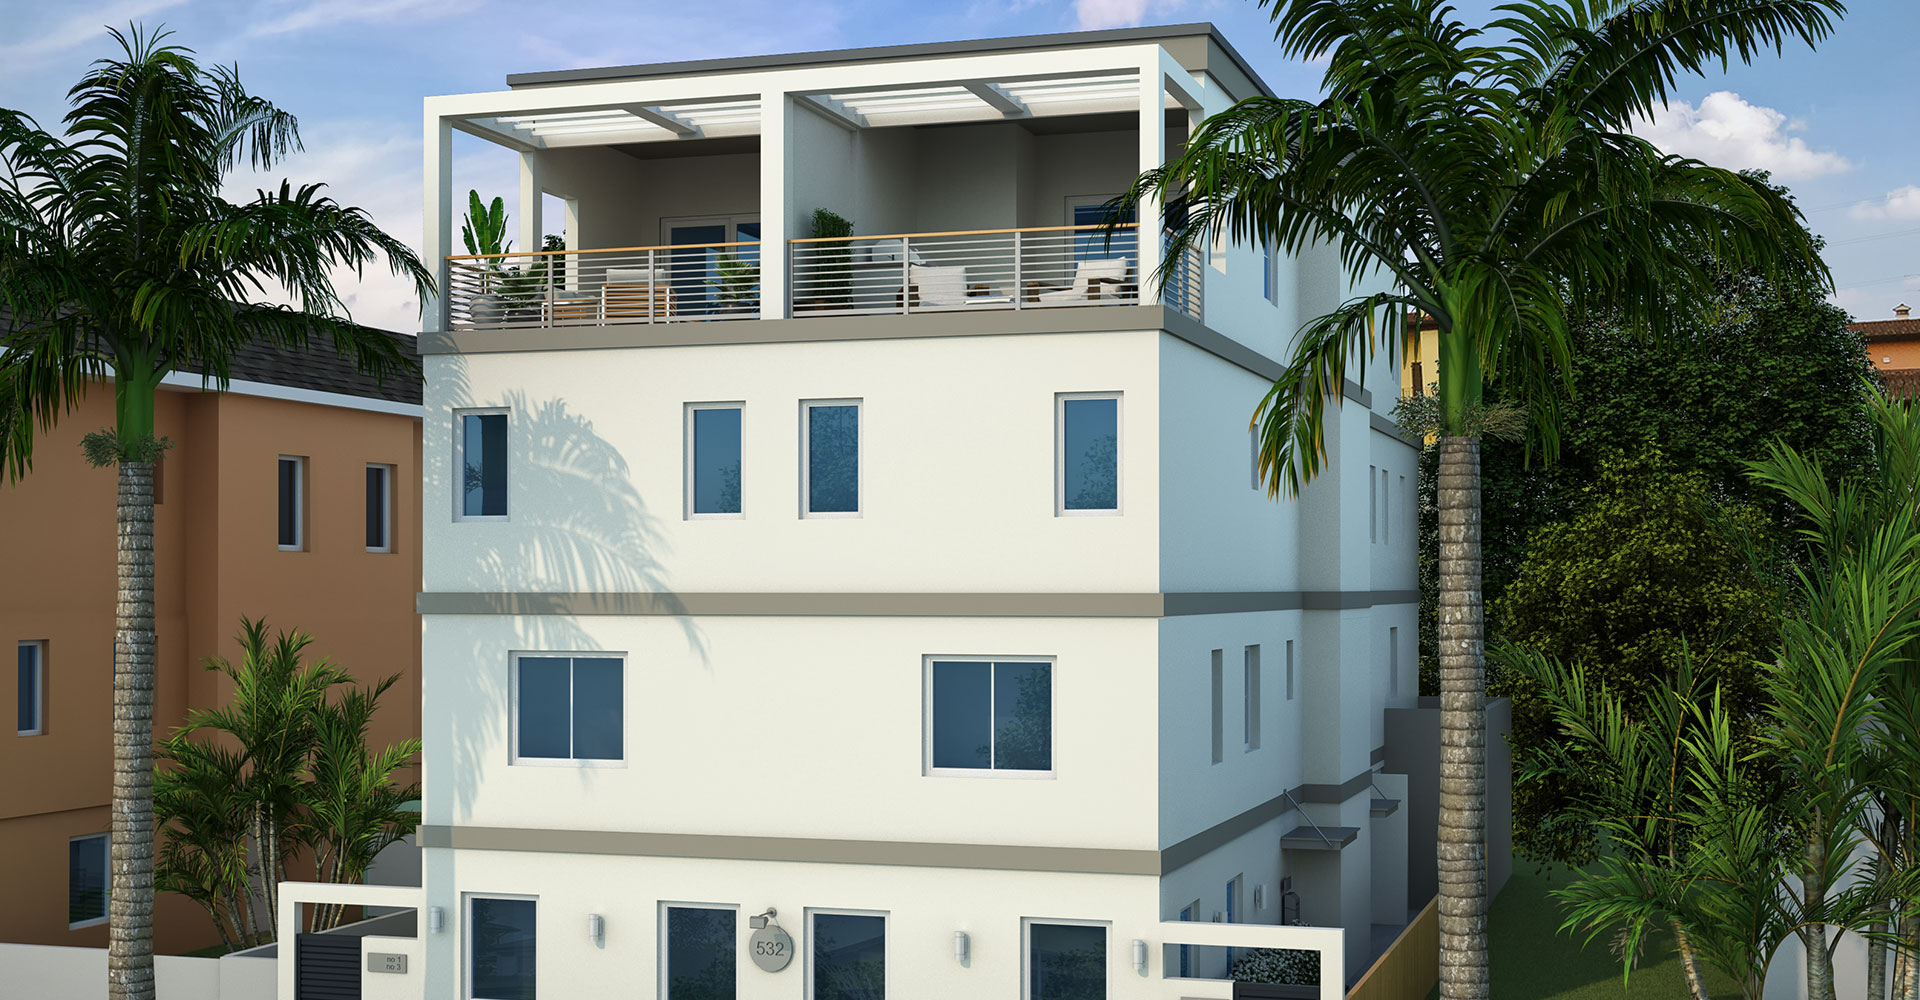 The Sabal, Salt Palm's first development, is located at 532 4th Avenue South in Downtown St. Pete